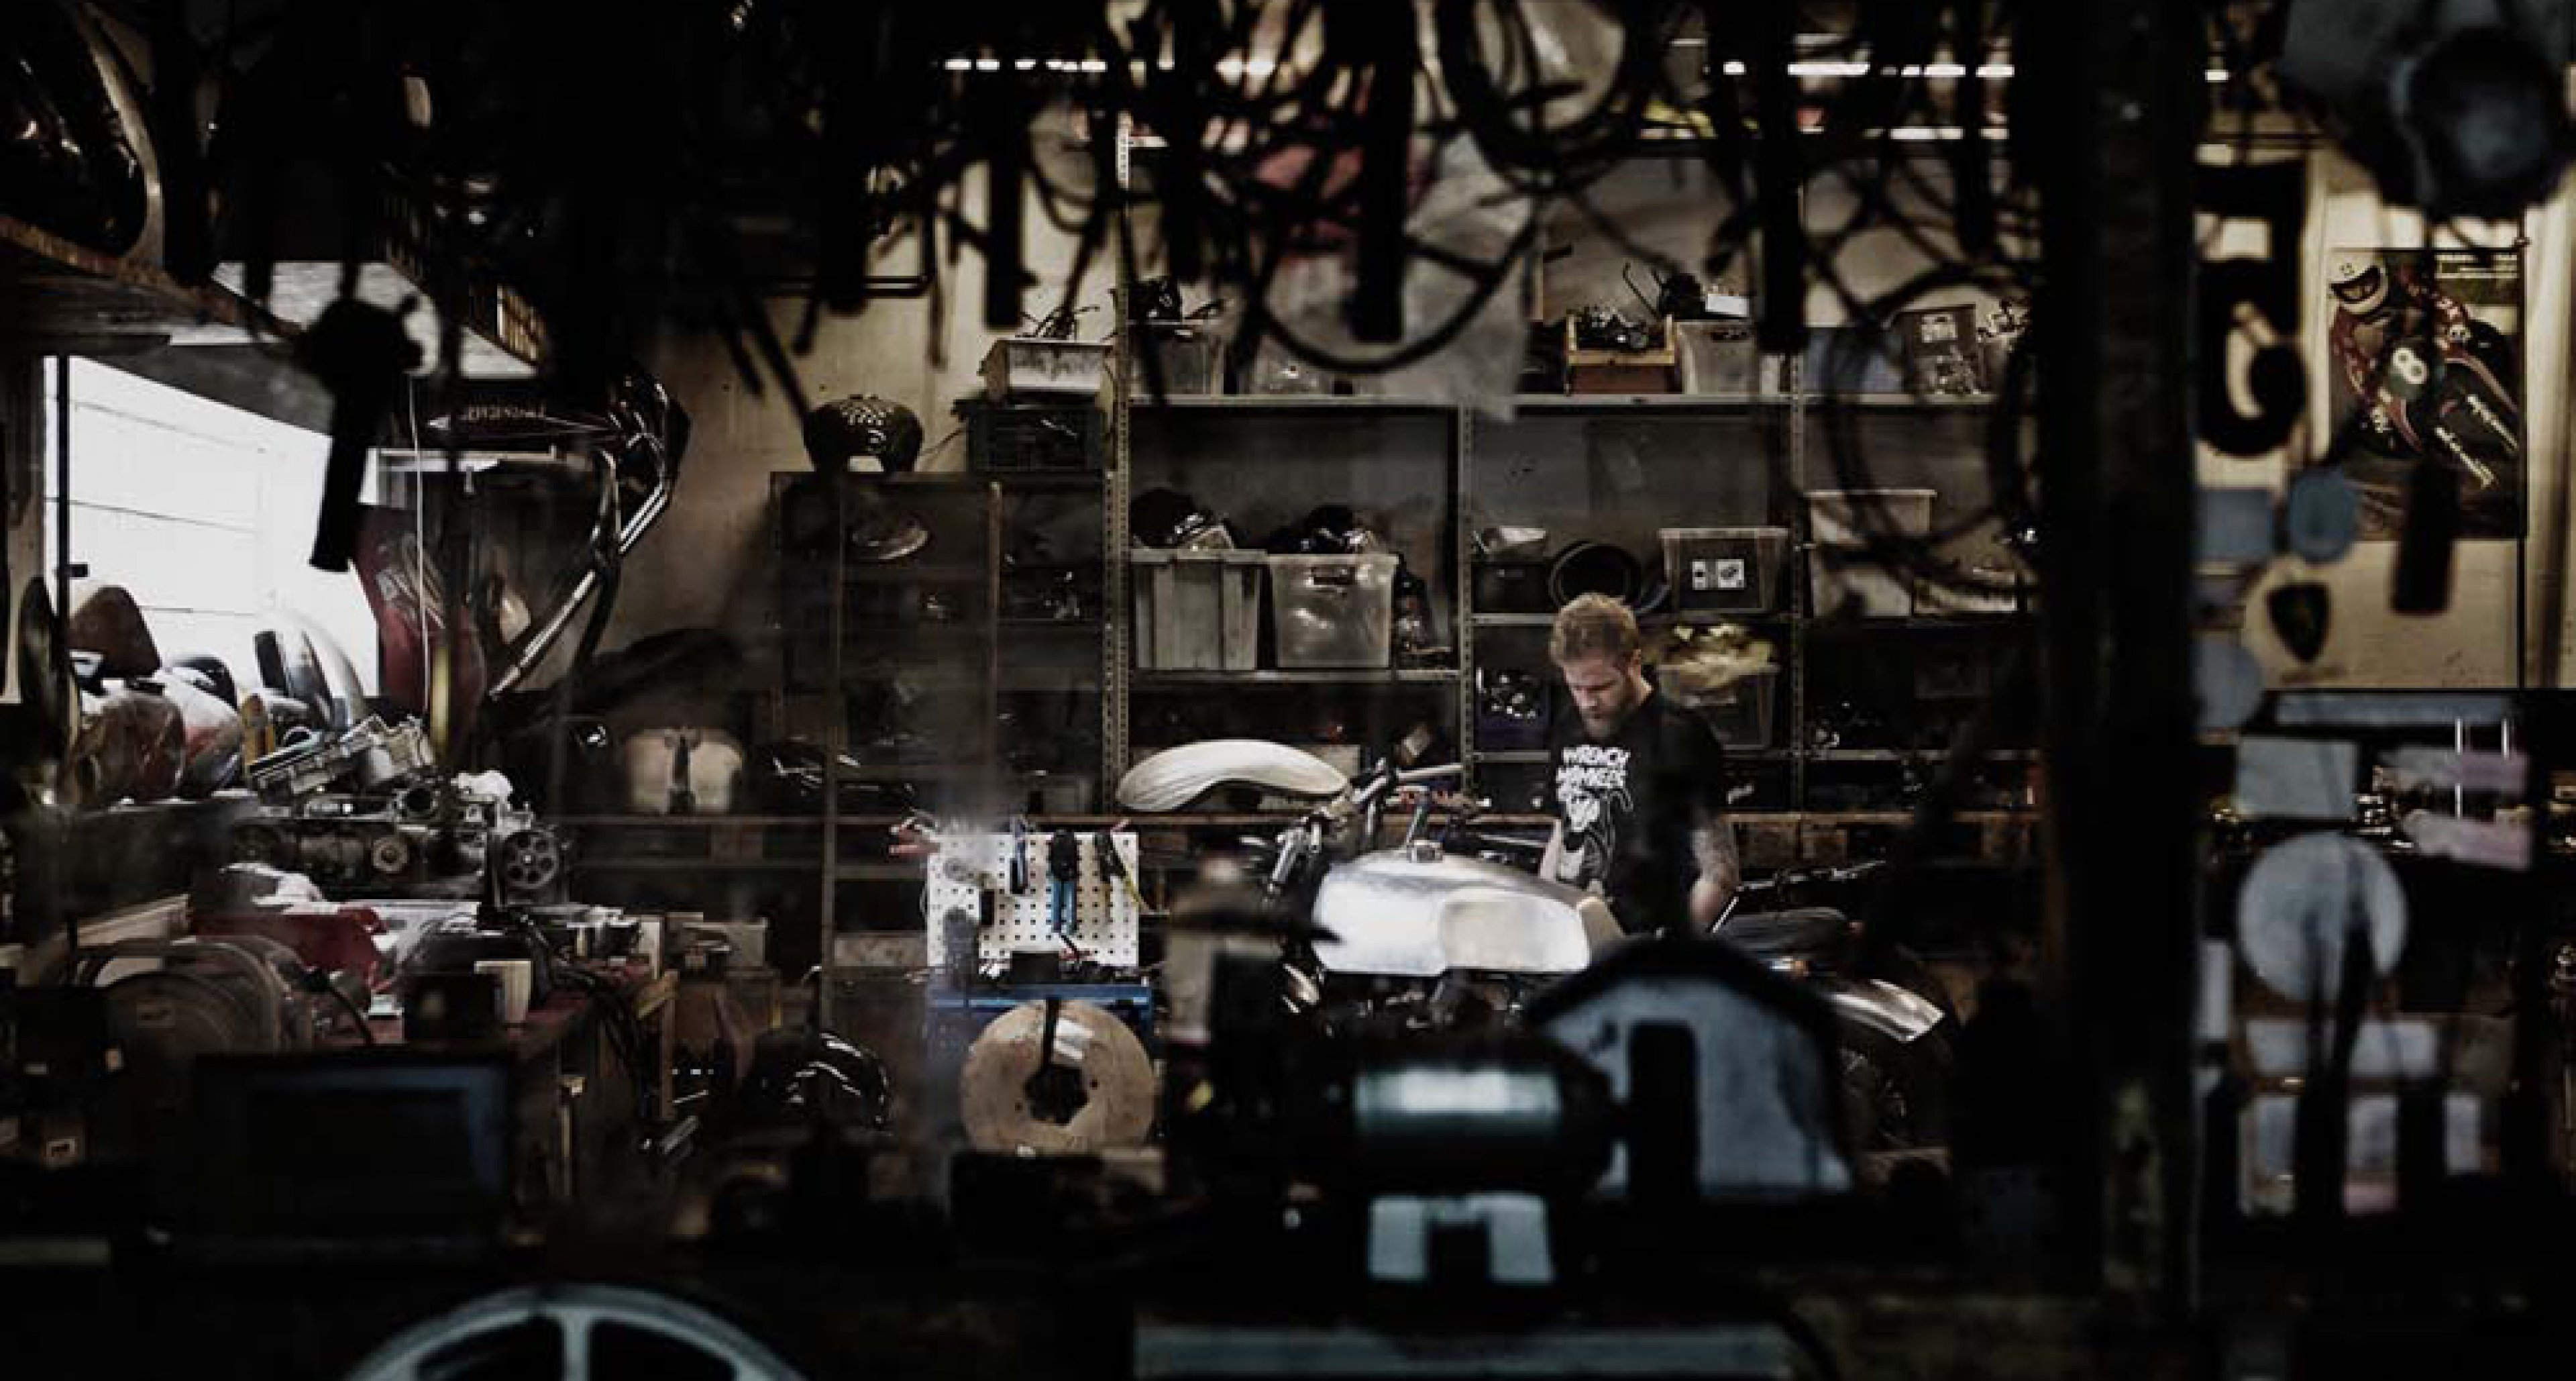 Inside the Wrenchmonkeesworkshop in Amager, east of Copenhagen. Photo by Tuala.